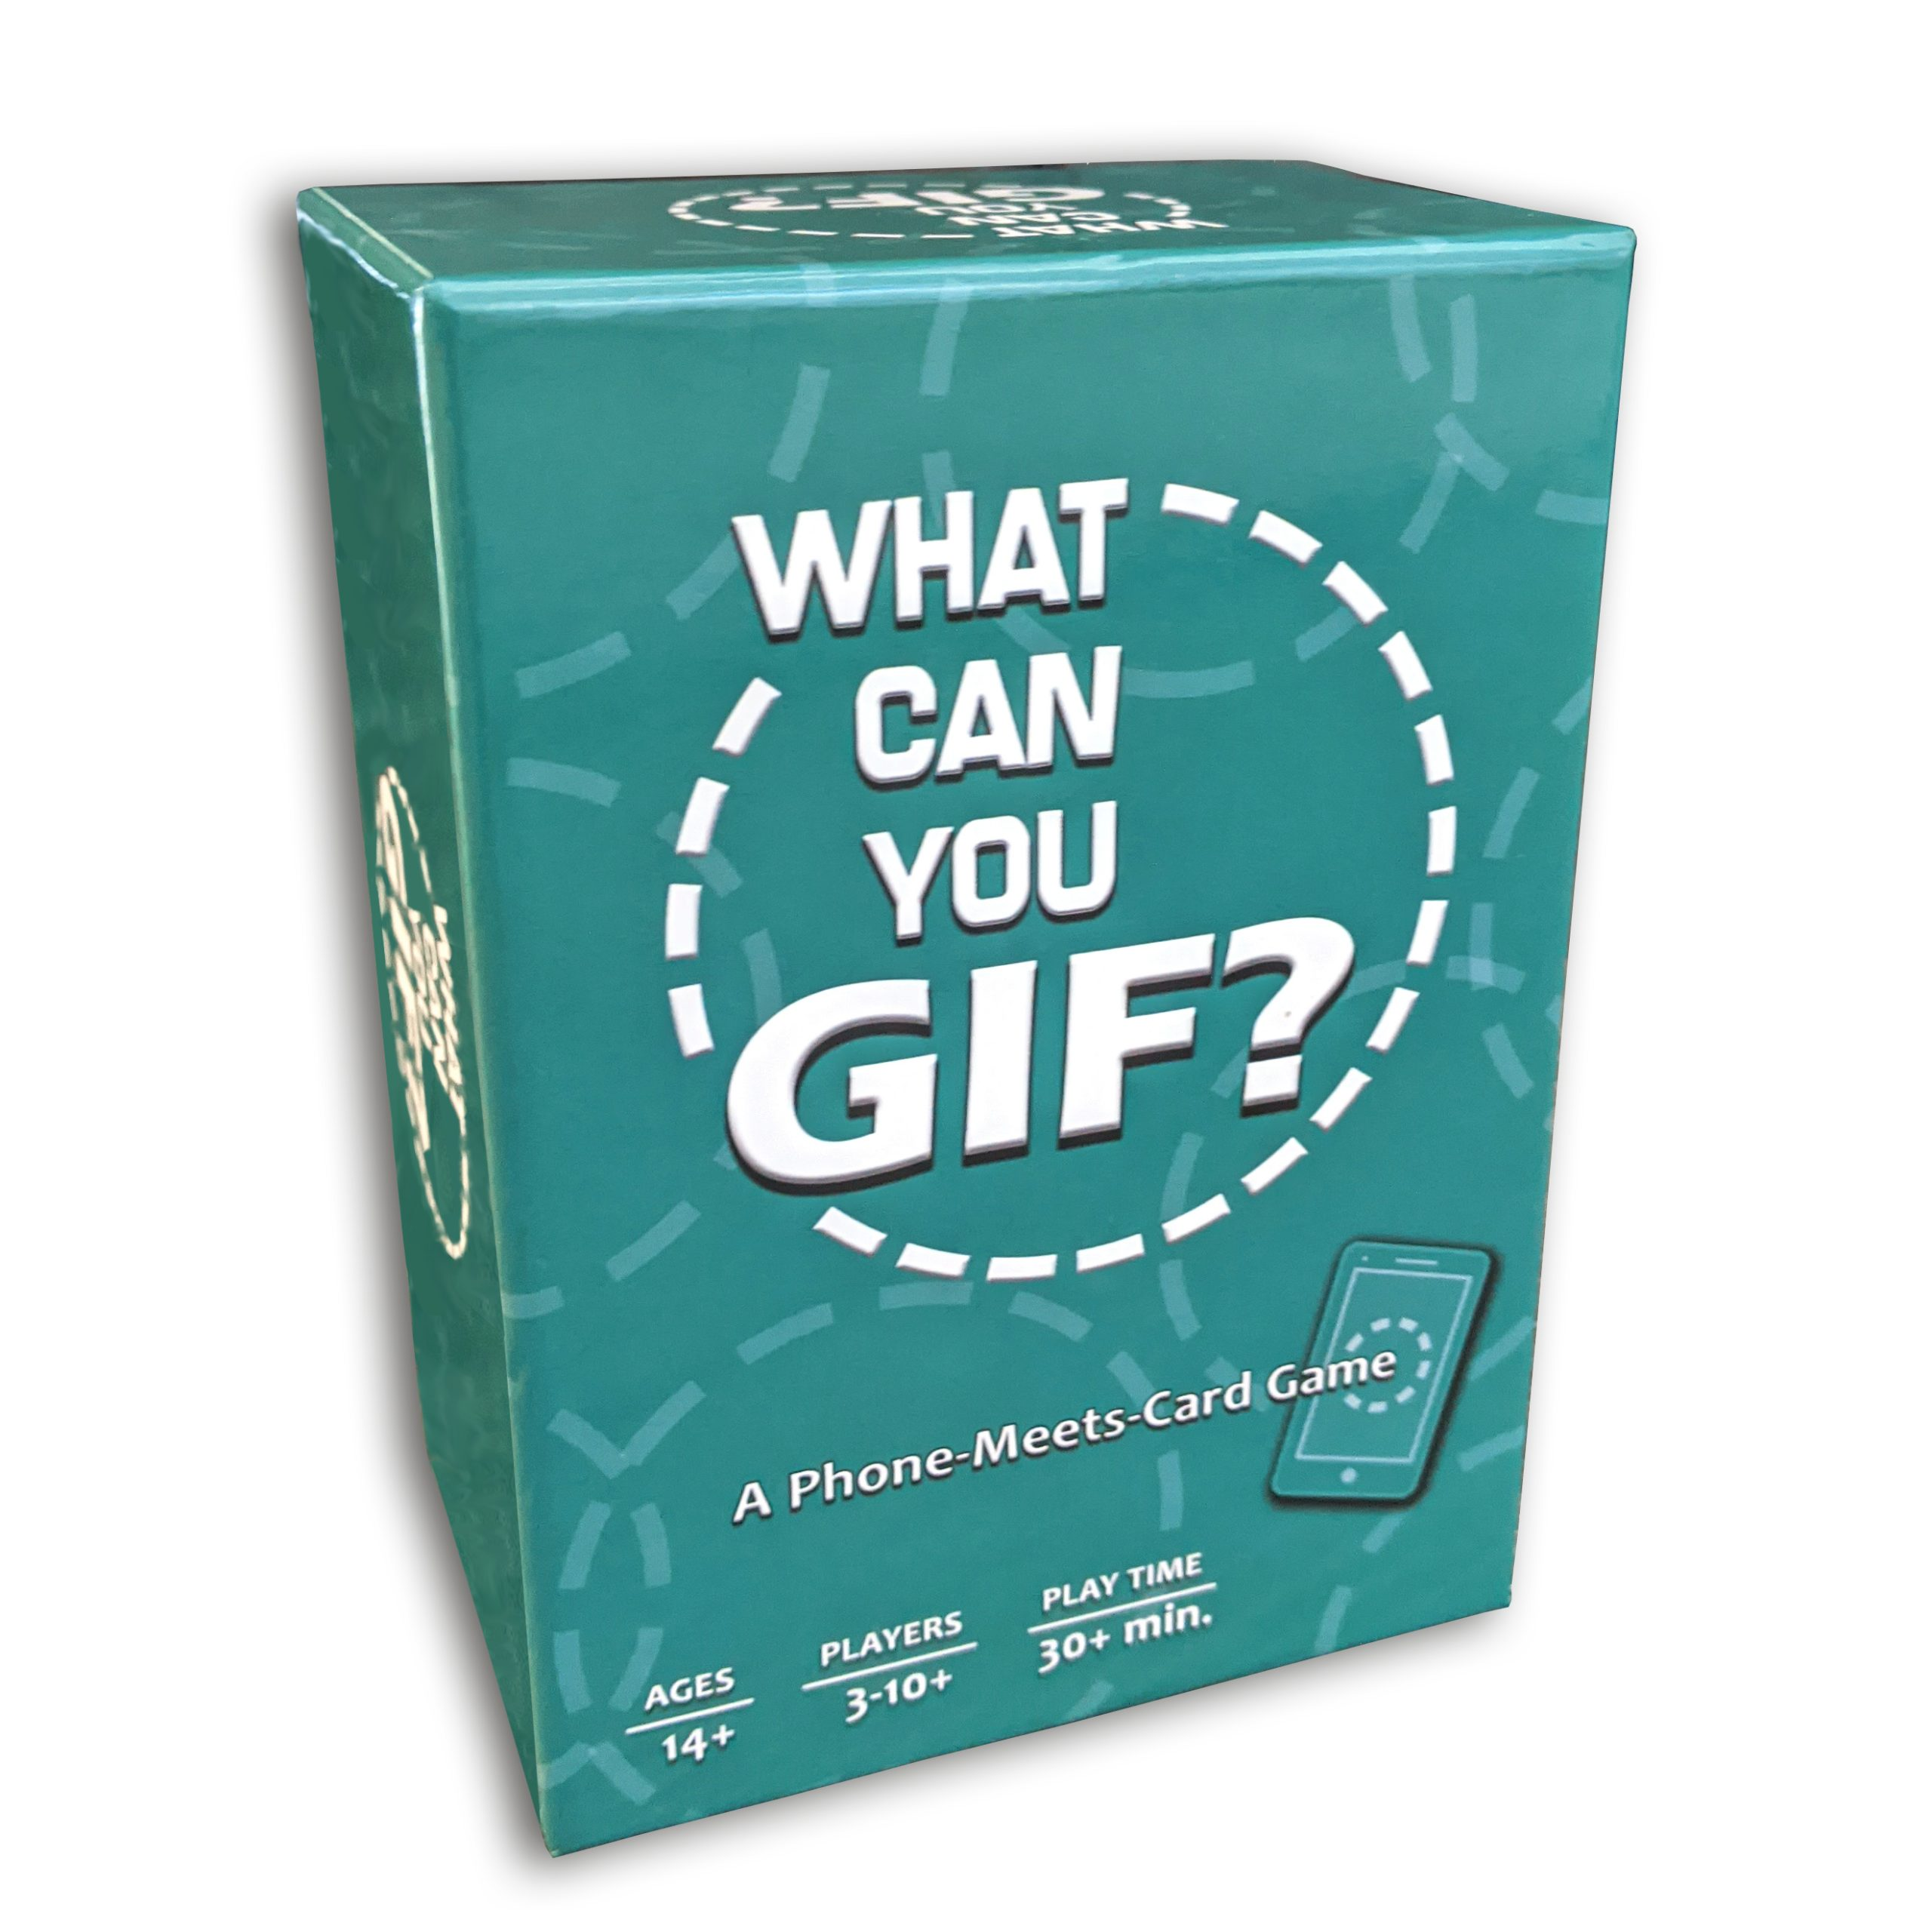 What Can You GIF?